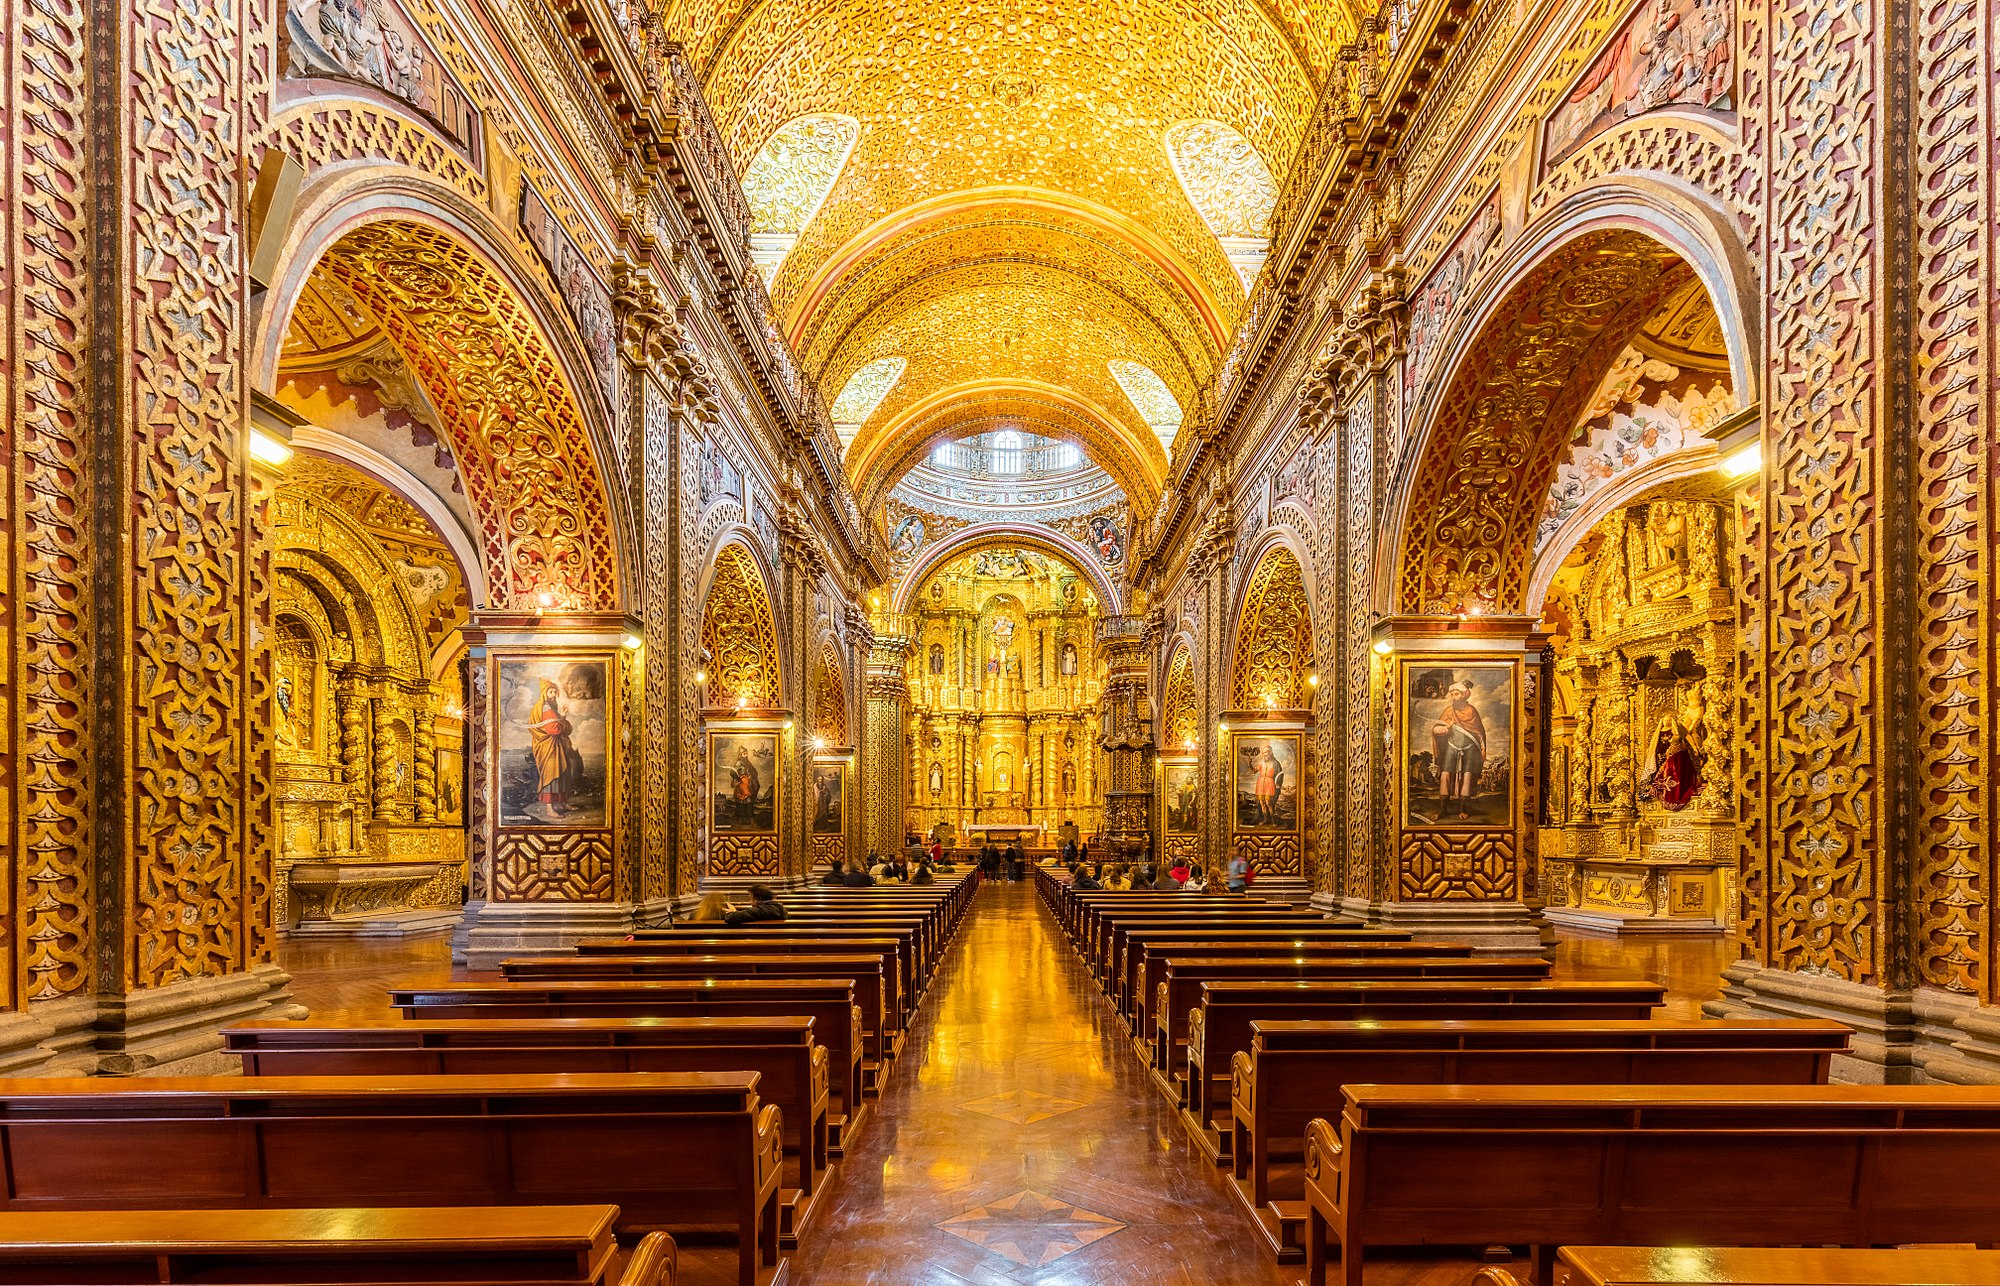 Main nave of the Church of the Society of Jesus (La Iglesia de la Compañía de Jesús), a Jesuit church in Quito, Ecuador. The exterior doesn't give an idea of the beauty of the interior, with a large central nave, which is profusely decorated with gold leaf, gilded plaster and wood carvings, making of it the most ornate church in Quito. The temple is one of the most significant works of Spanish Baroque architecture in America and considered the most beautiful church in Ecuador.